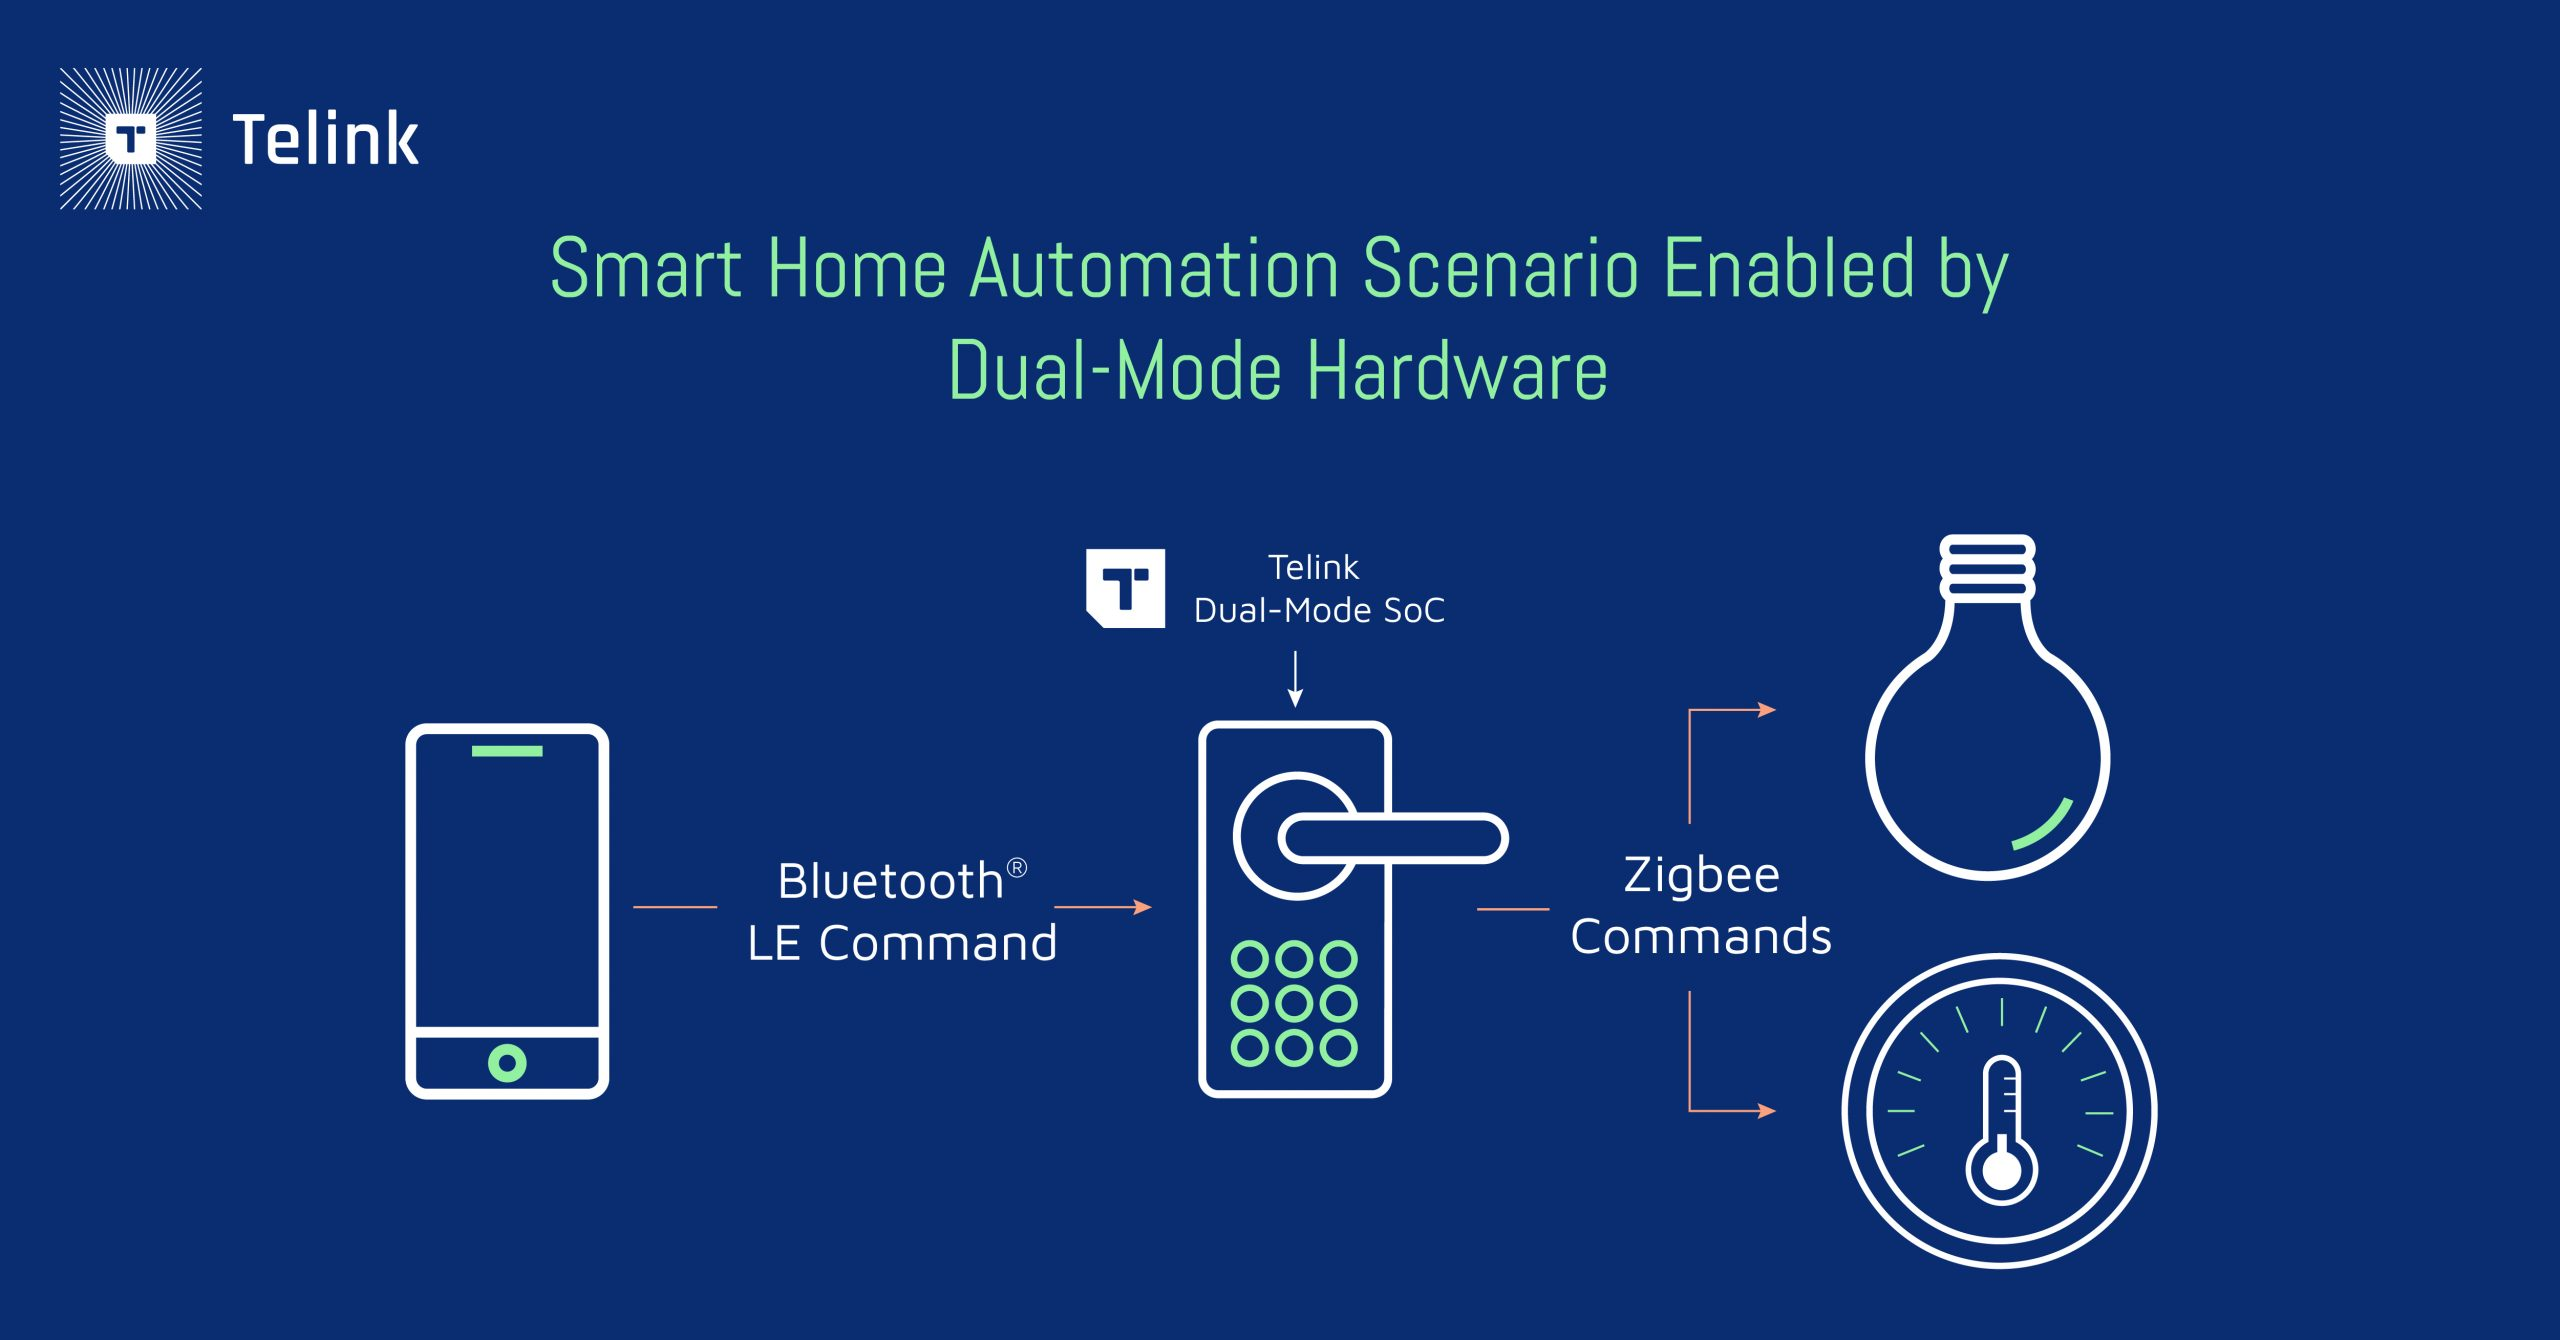 Smart home automation scenario enabled by dual-mode hardware